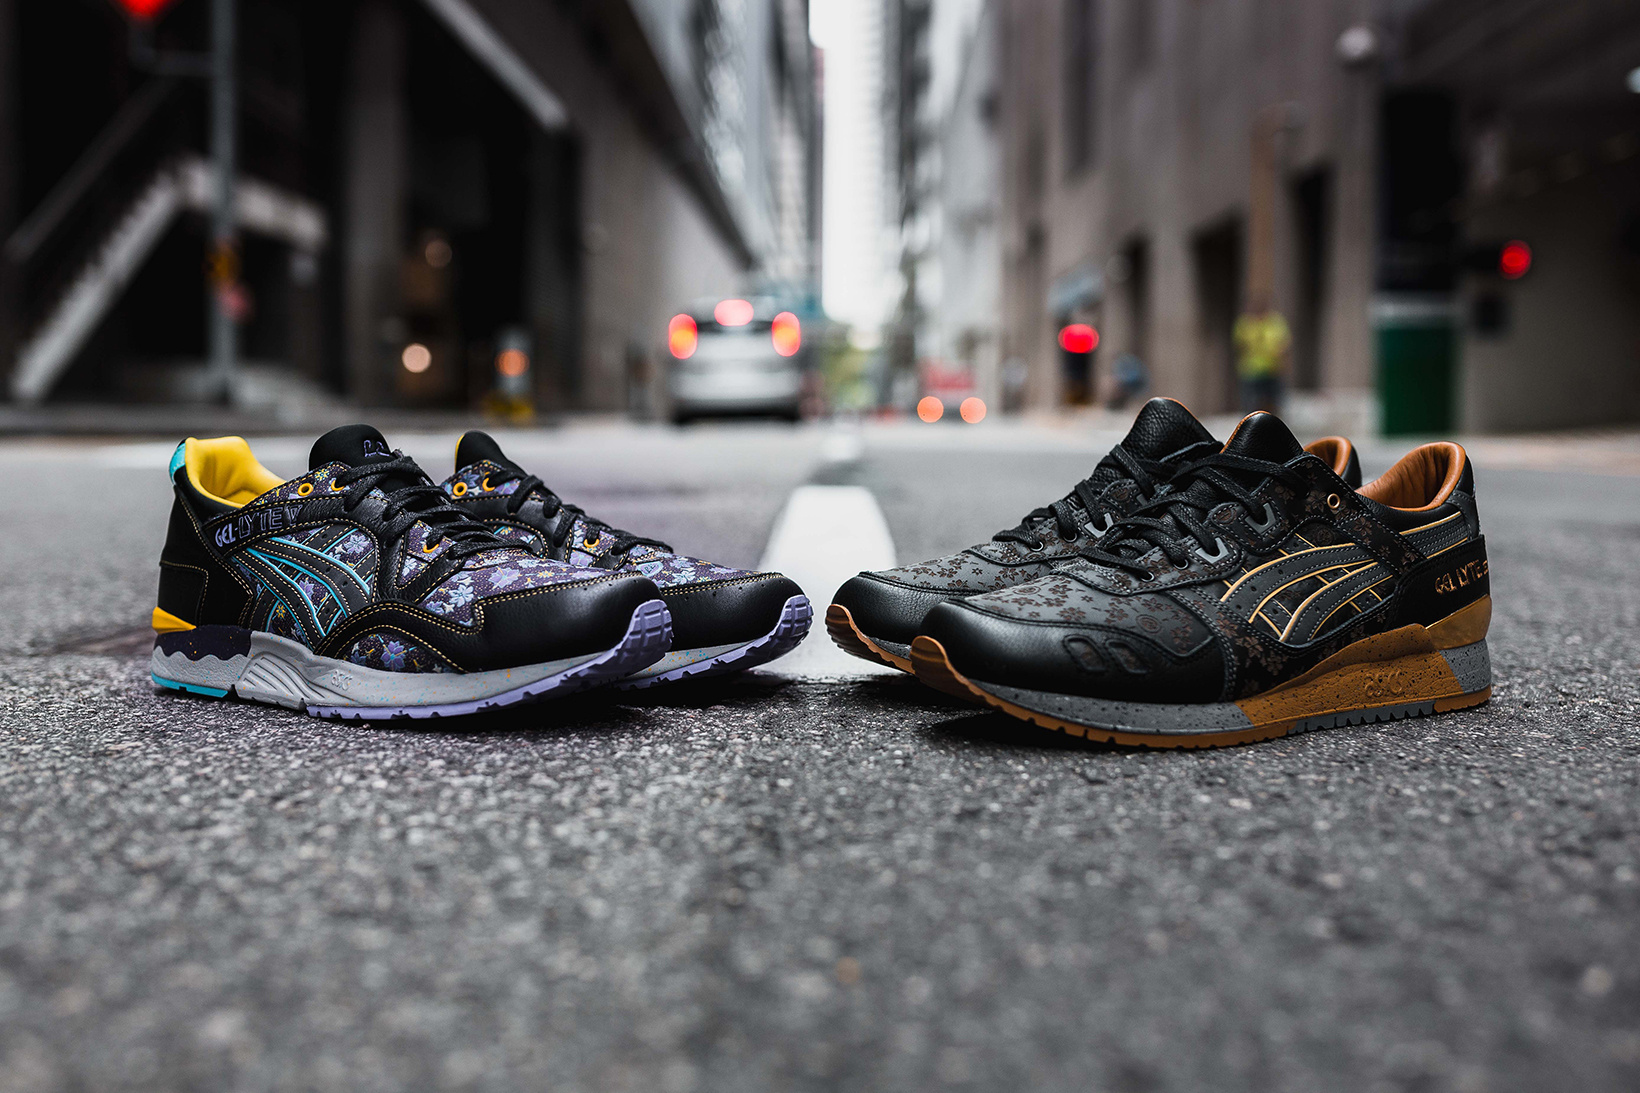 asics-tiger-collection-gel-lyte-iii-v-limited-edition-01